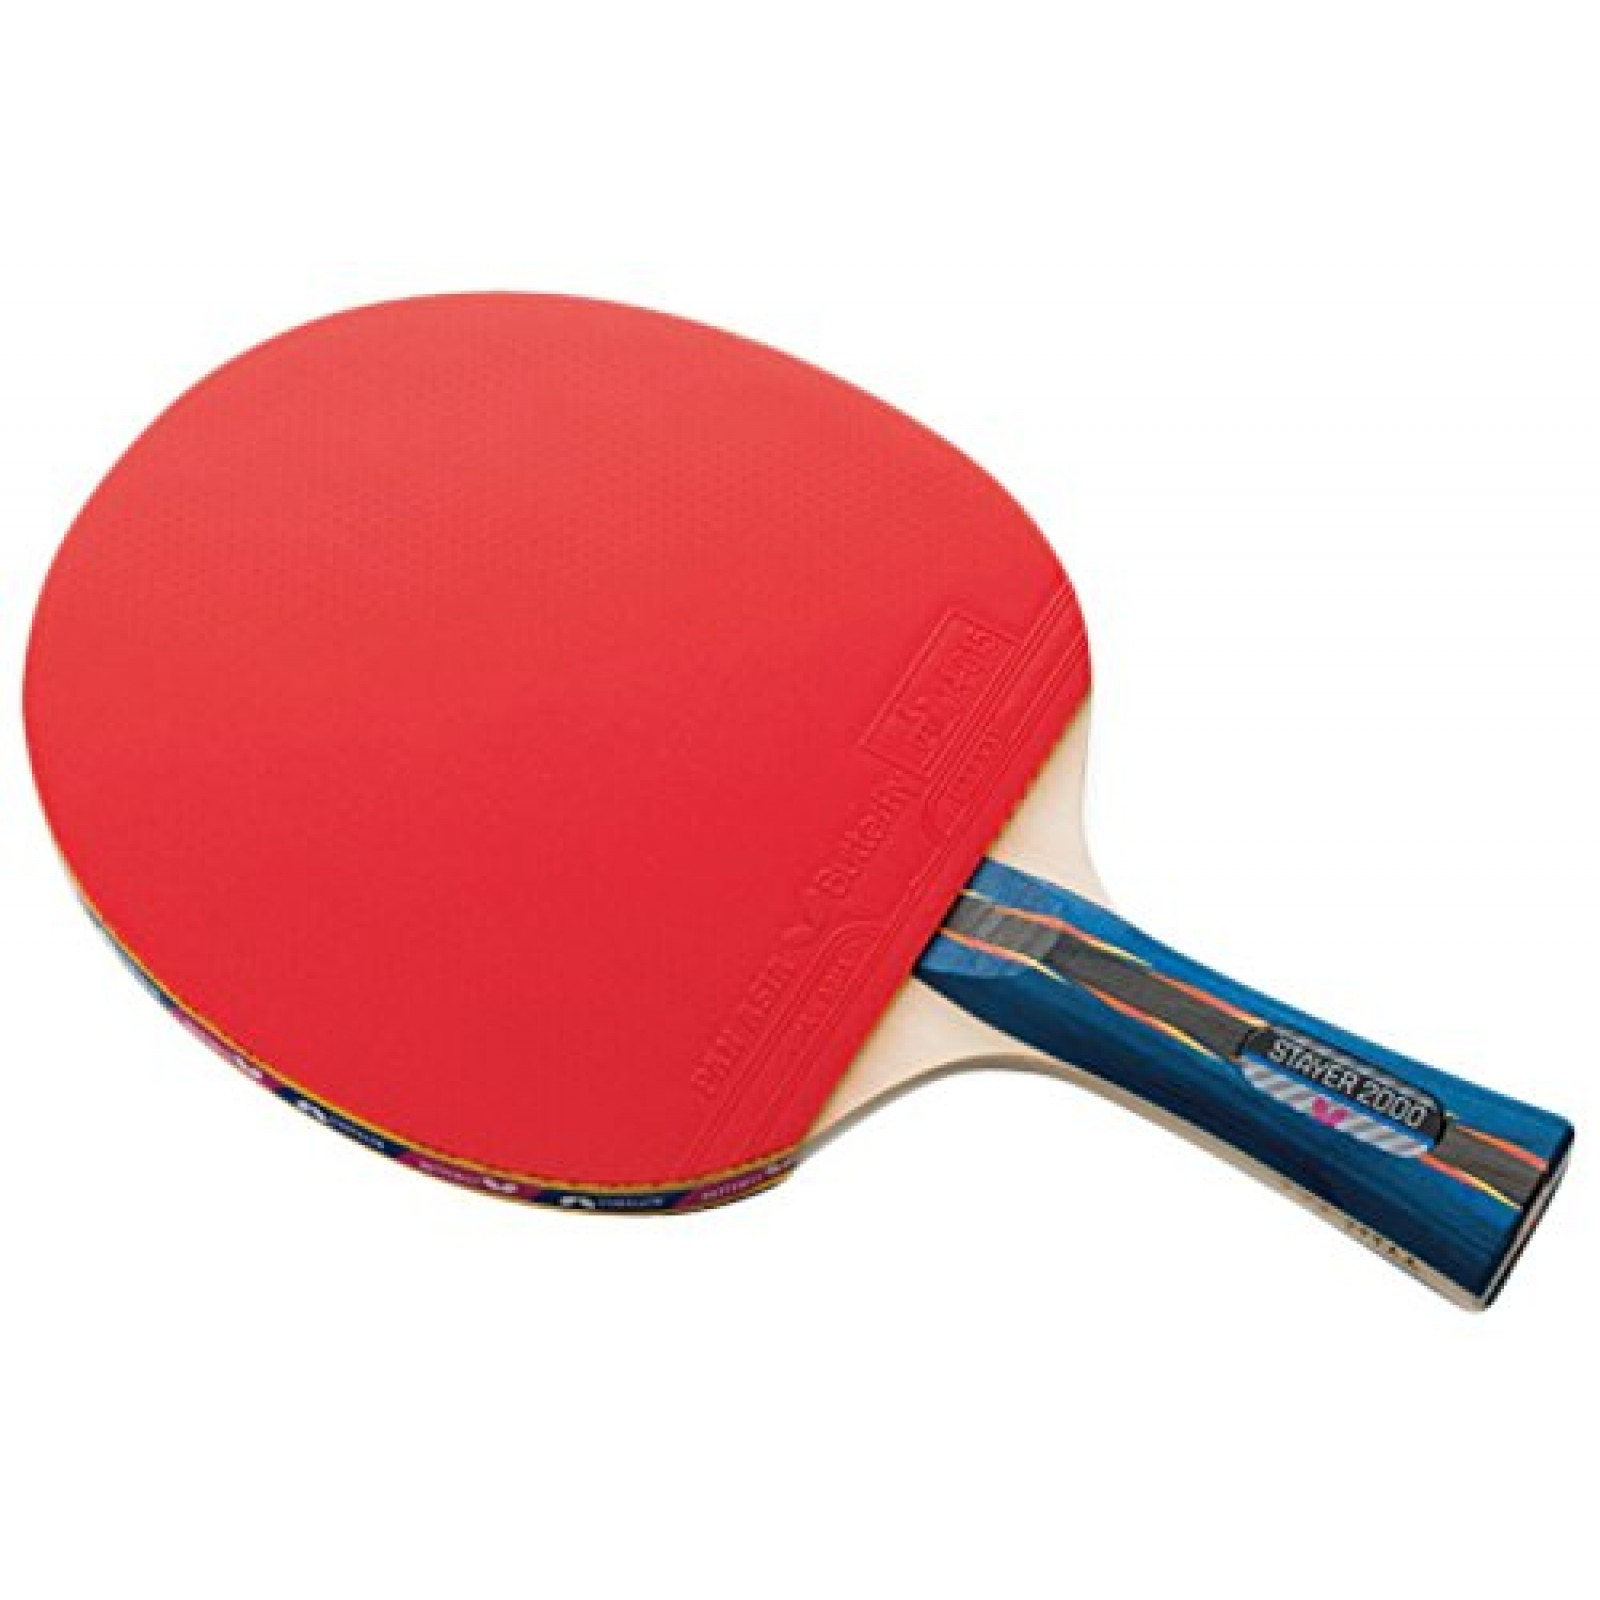 Butterfly stayer 2000 shakehand fl table tennis racket - Butterfly table tennis official website ...